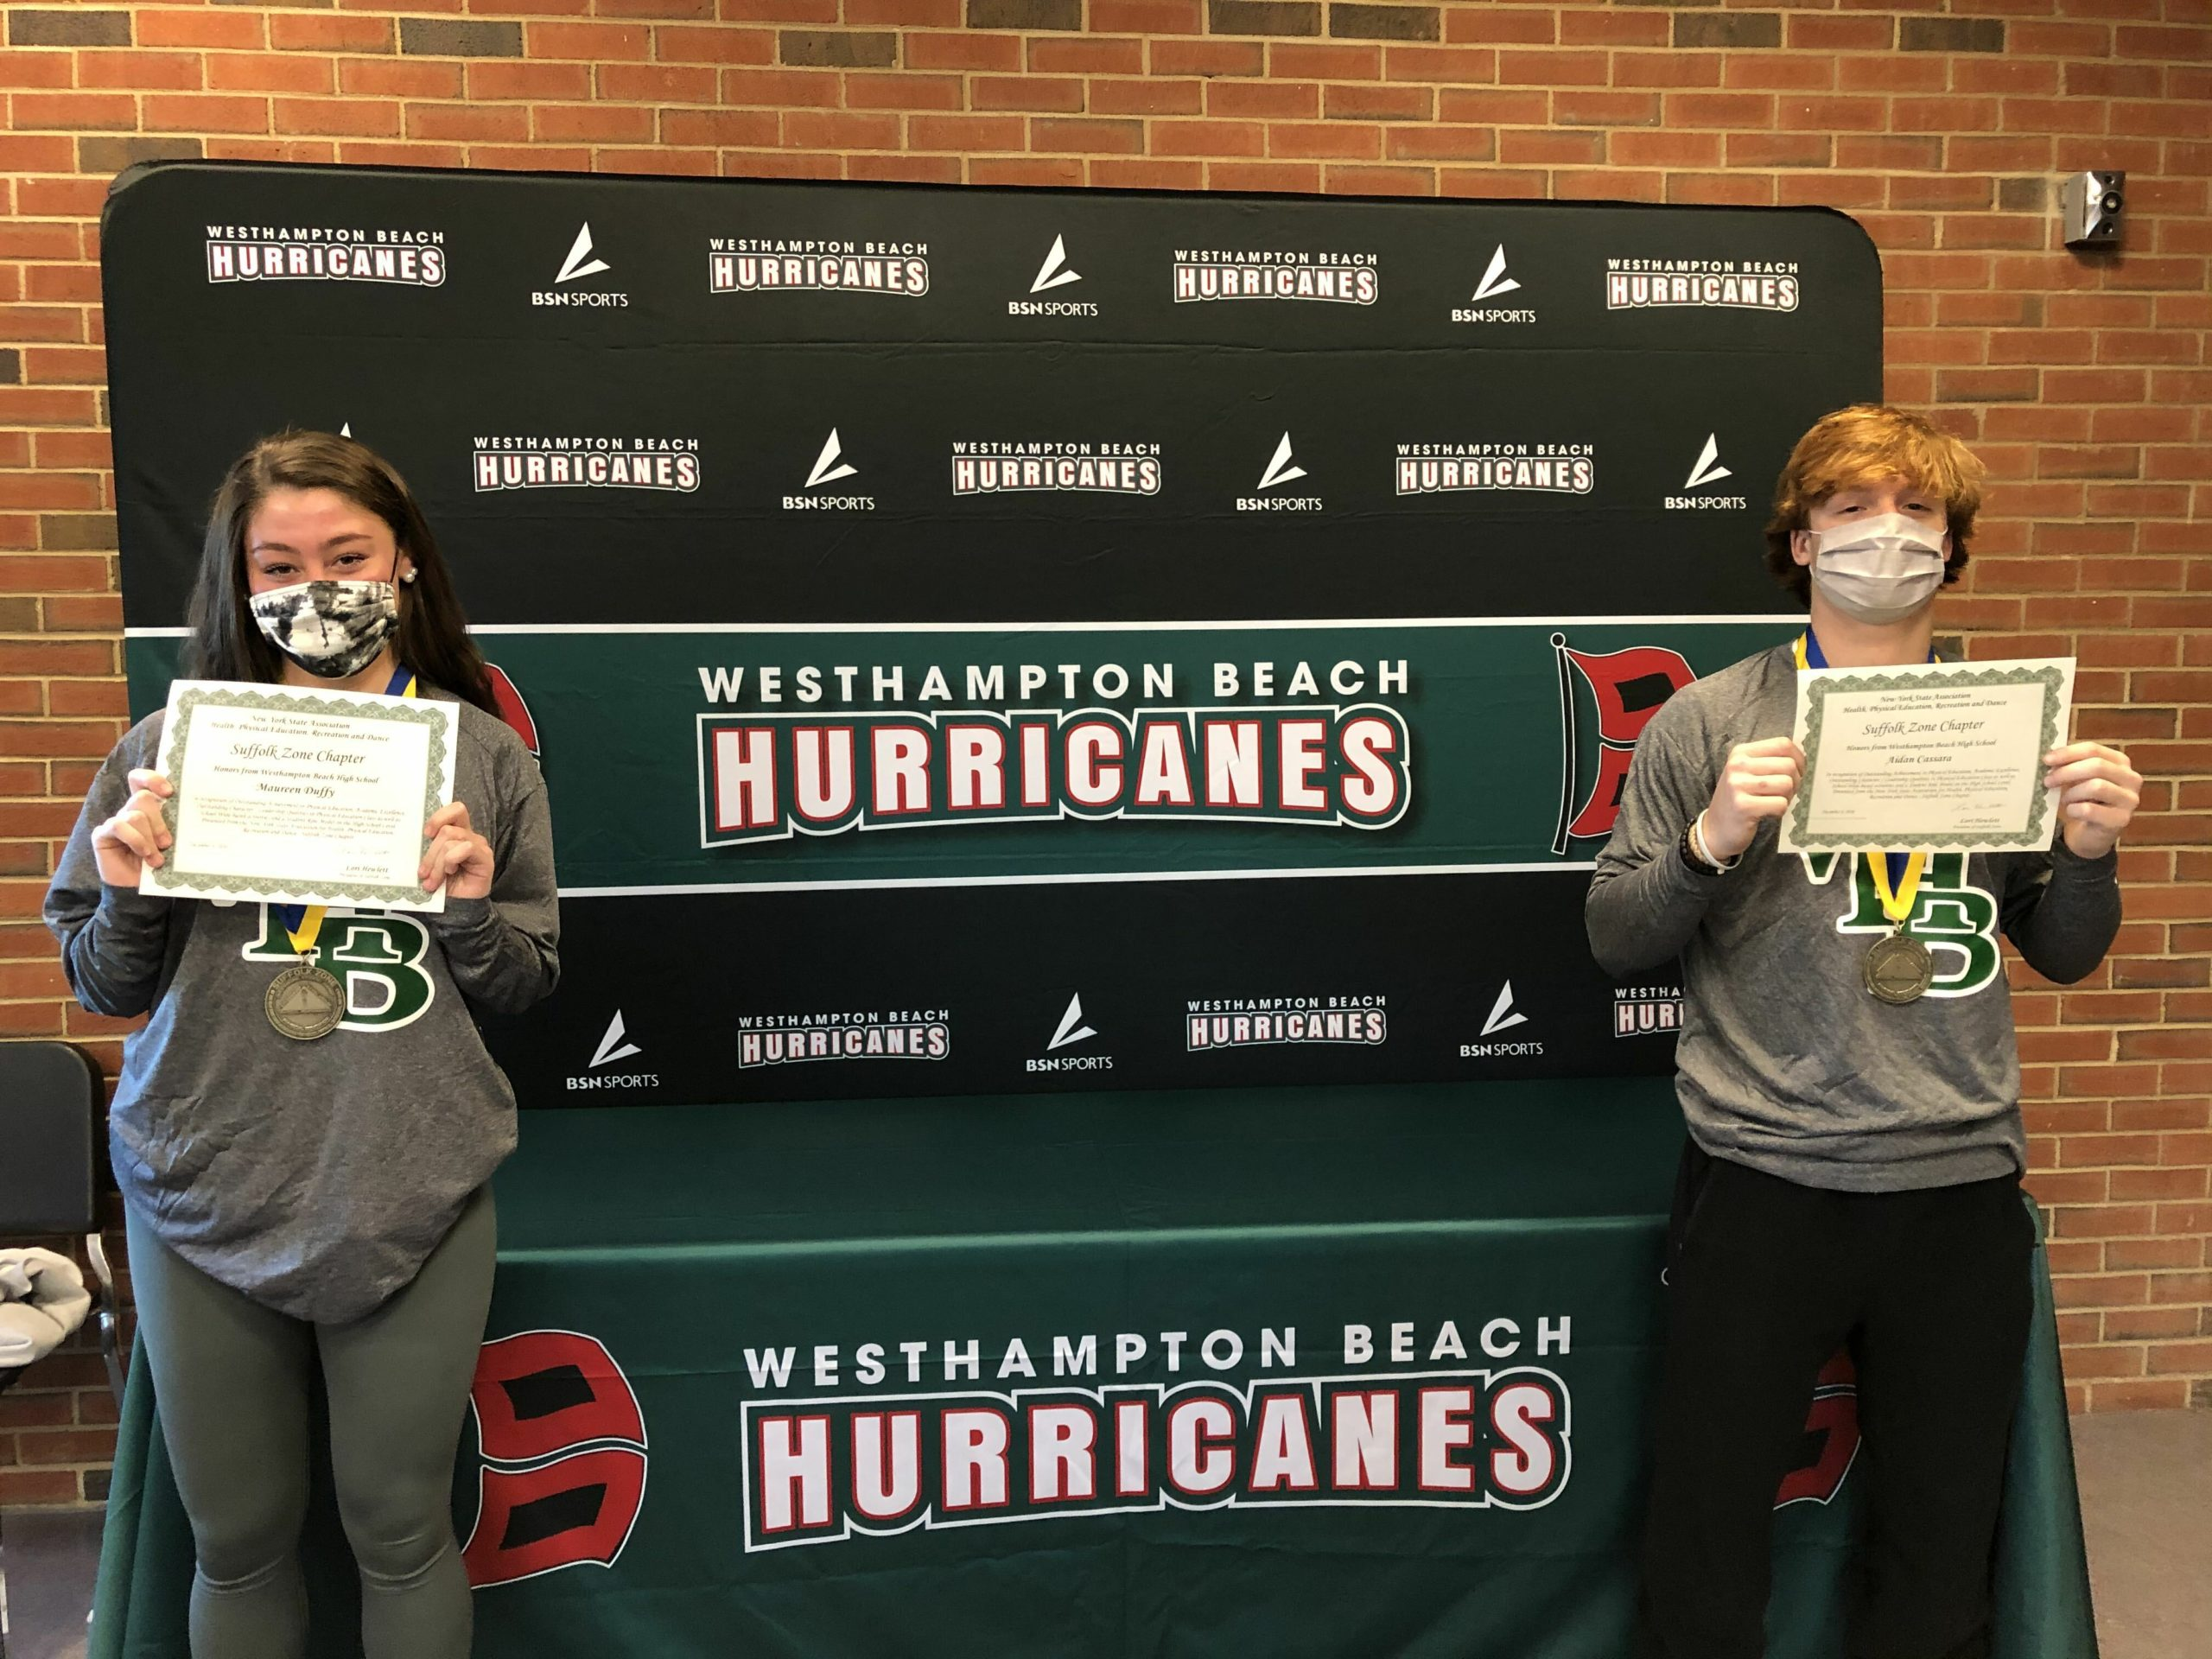 Westhampton Beach High School seniors Maureen Duffy and Aidan Cassara were honored by the New York State Association for Health, Physical Education, Recreation and Dance as winners of the Suffolk Zone Student Leadership Award. The pair were selected based on their excellence in physical education, leadership ability and service to the community.